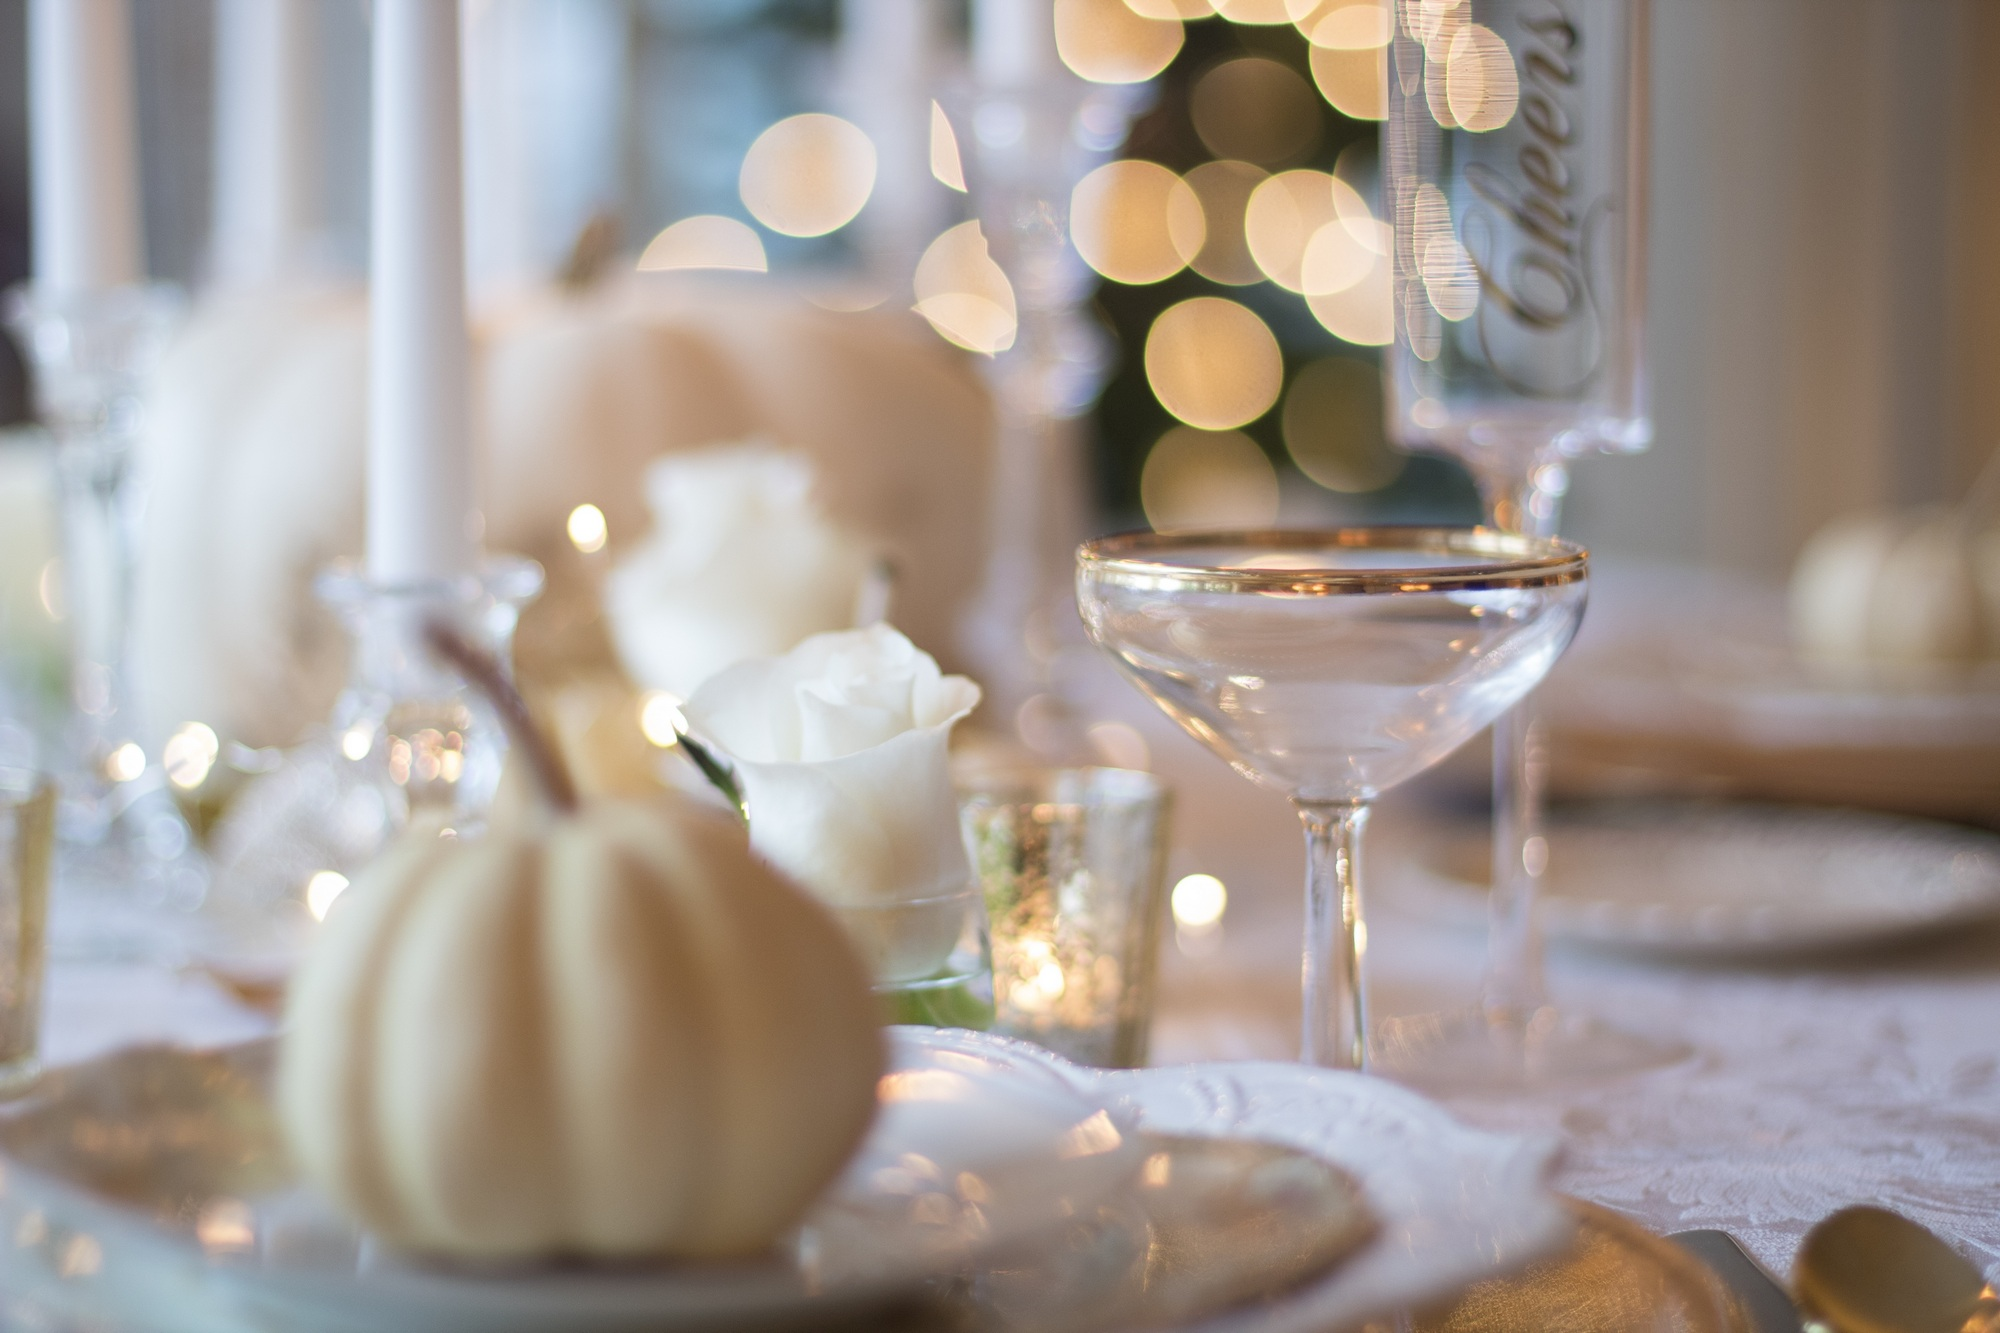 personalized Thanksgivng gifts